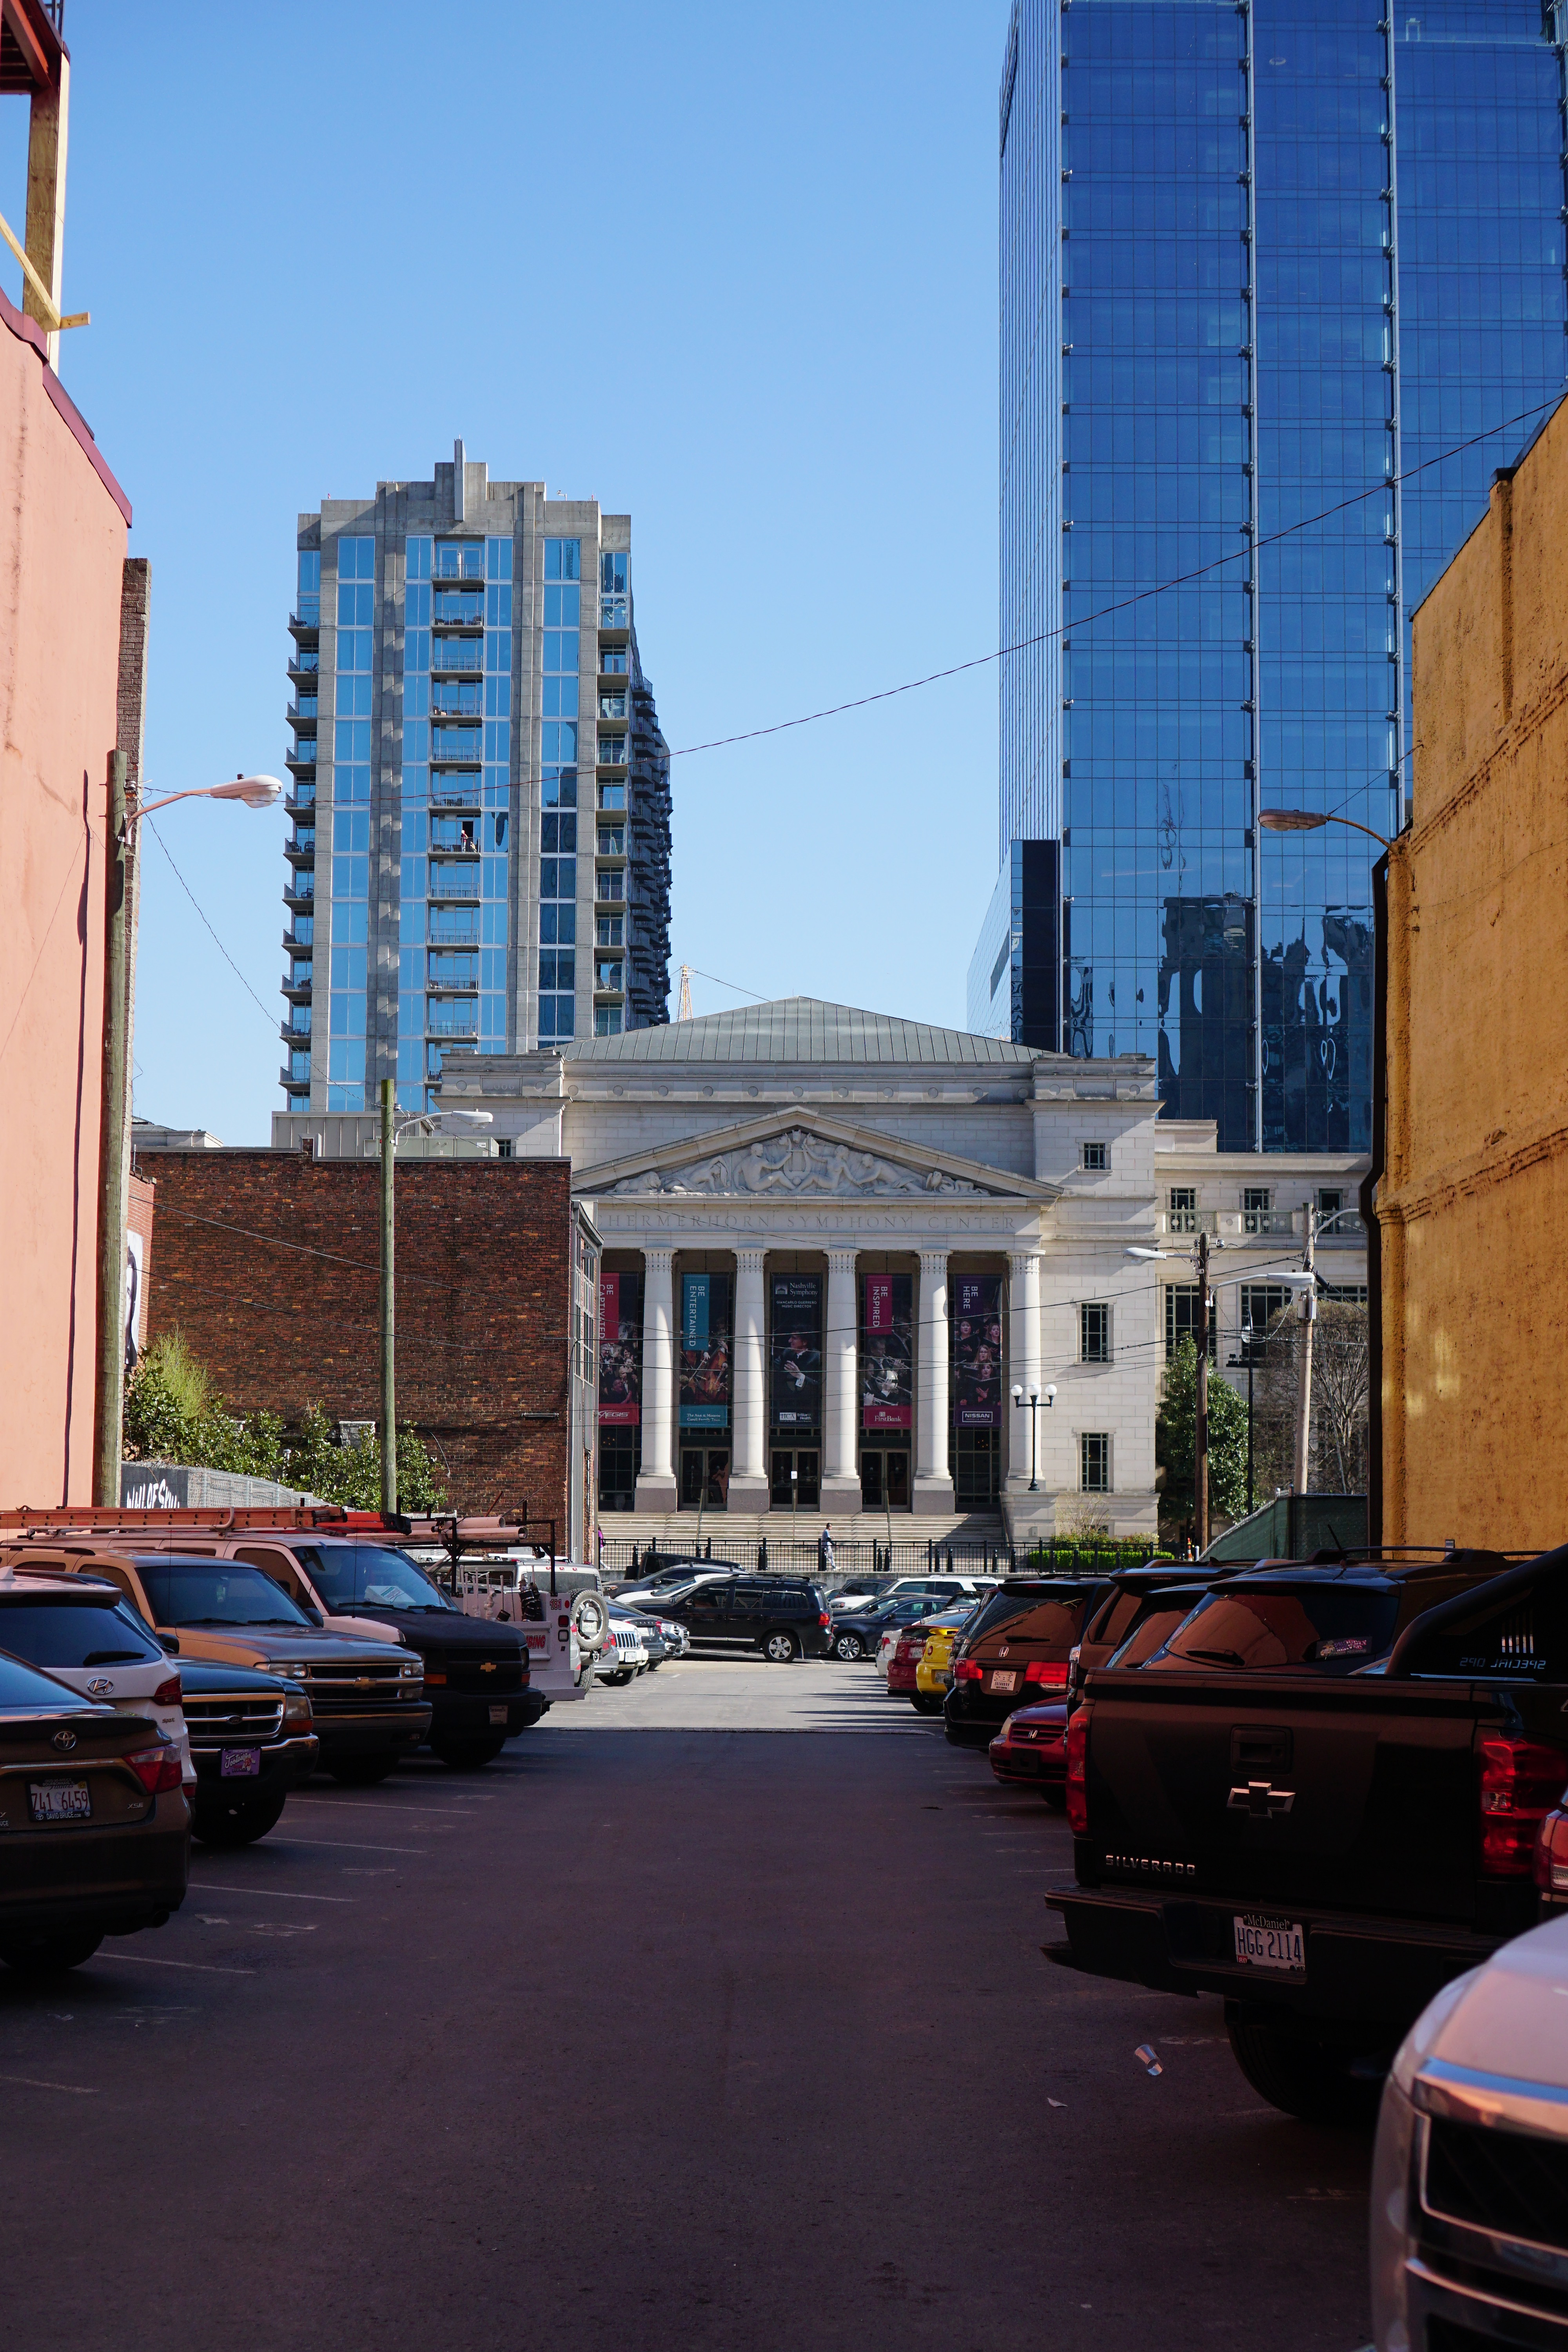 Making the most of Music City: How to spend 48 hours in